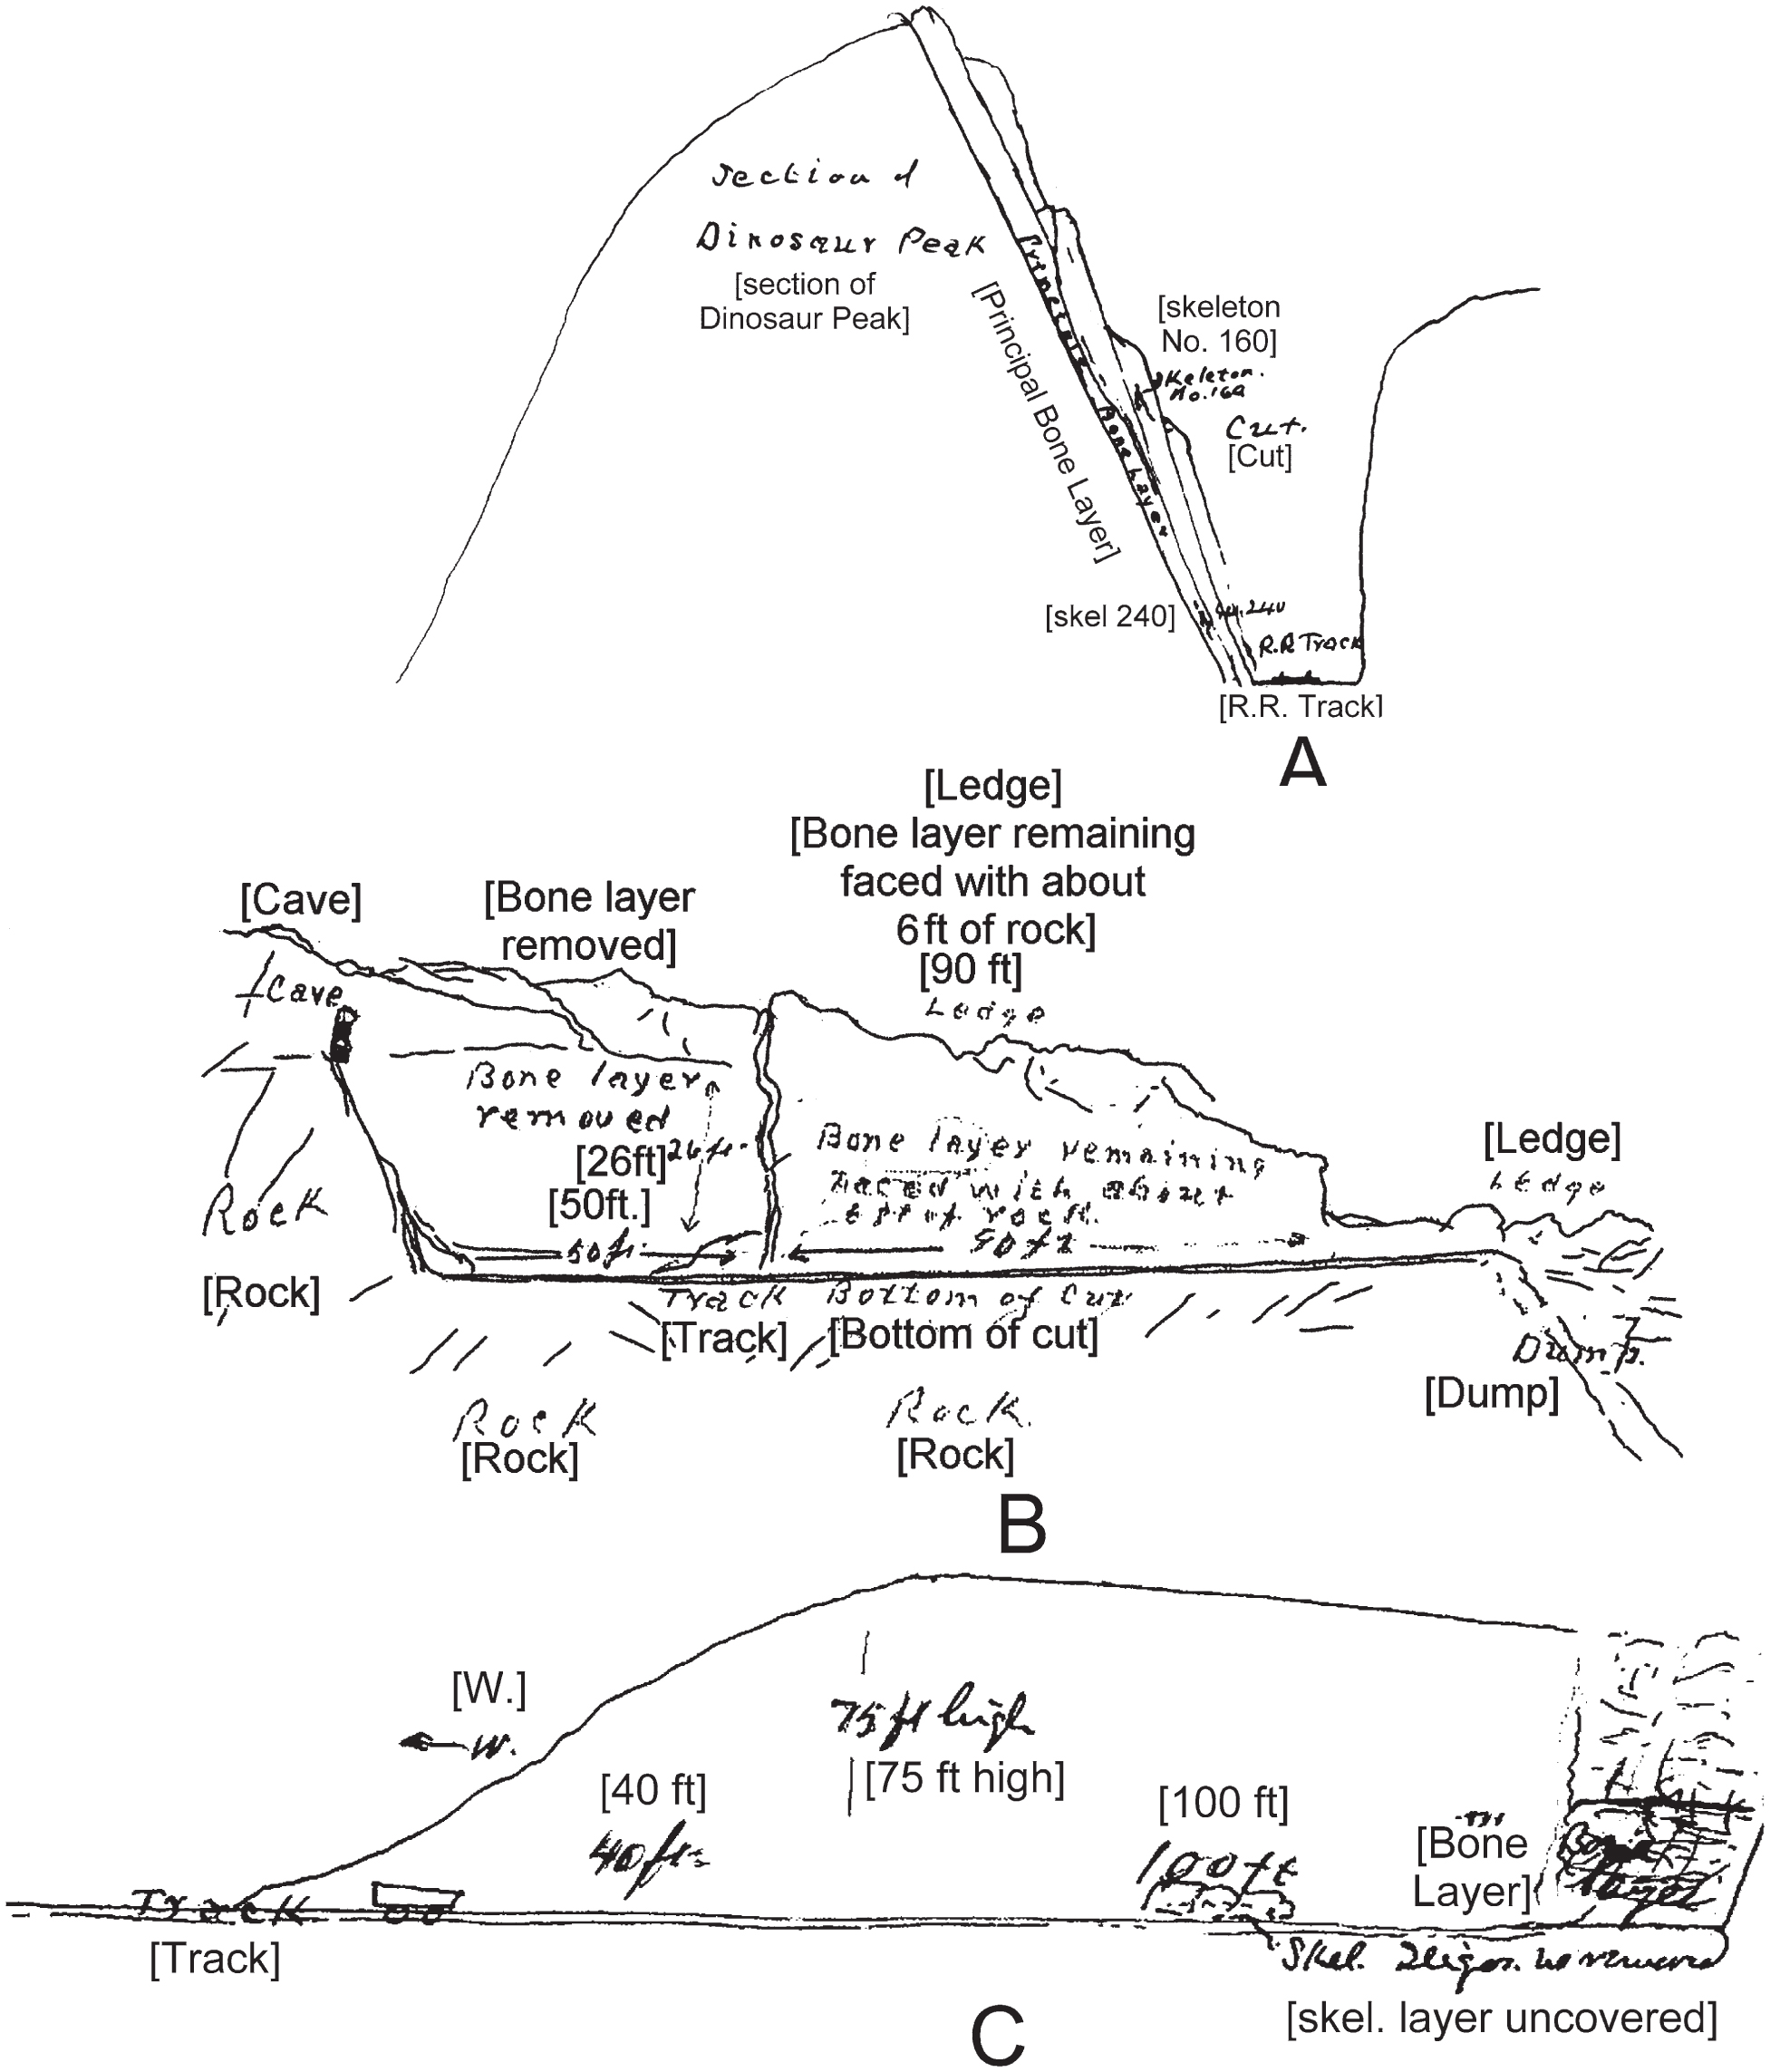 History, Sedimentology, and Taphonomy of the Carnegie Quarry